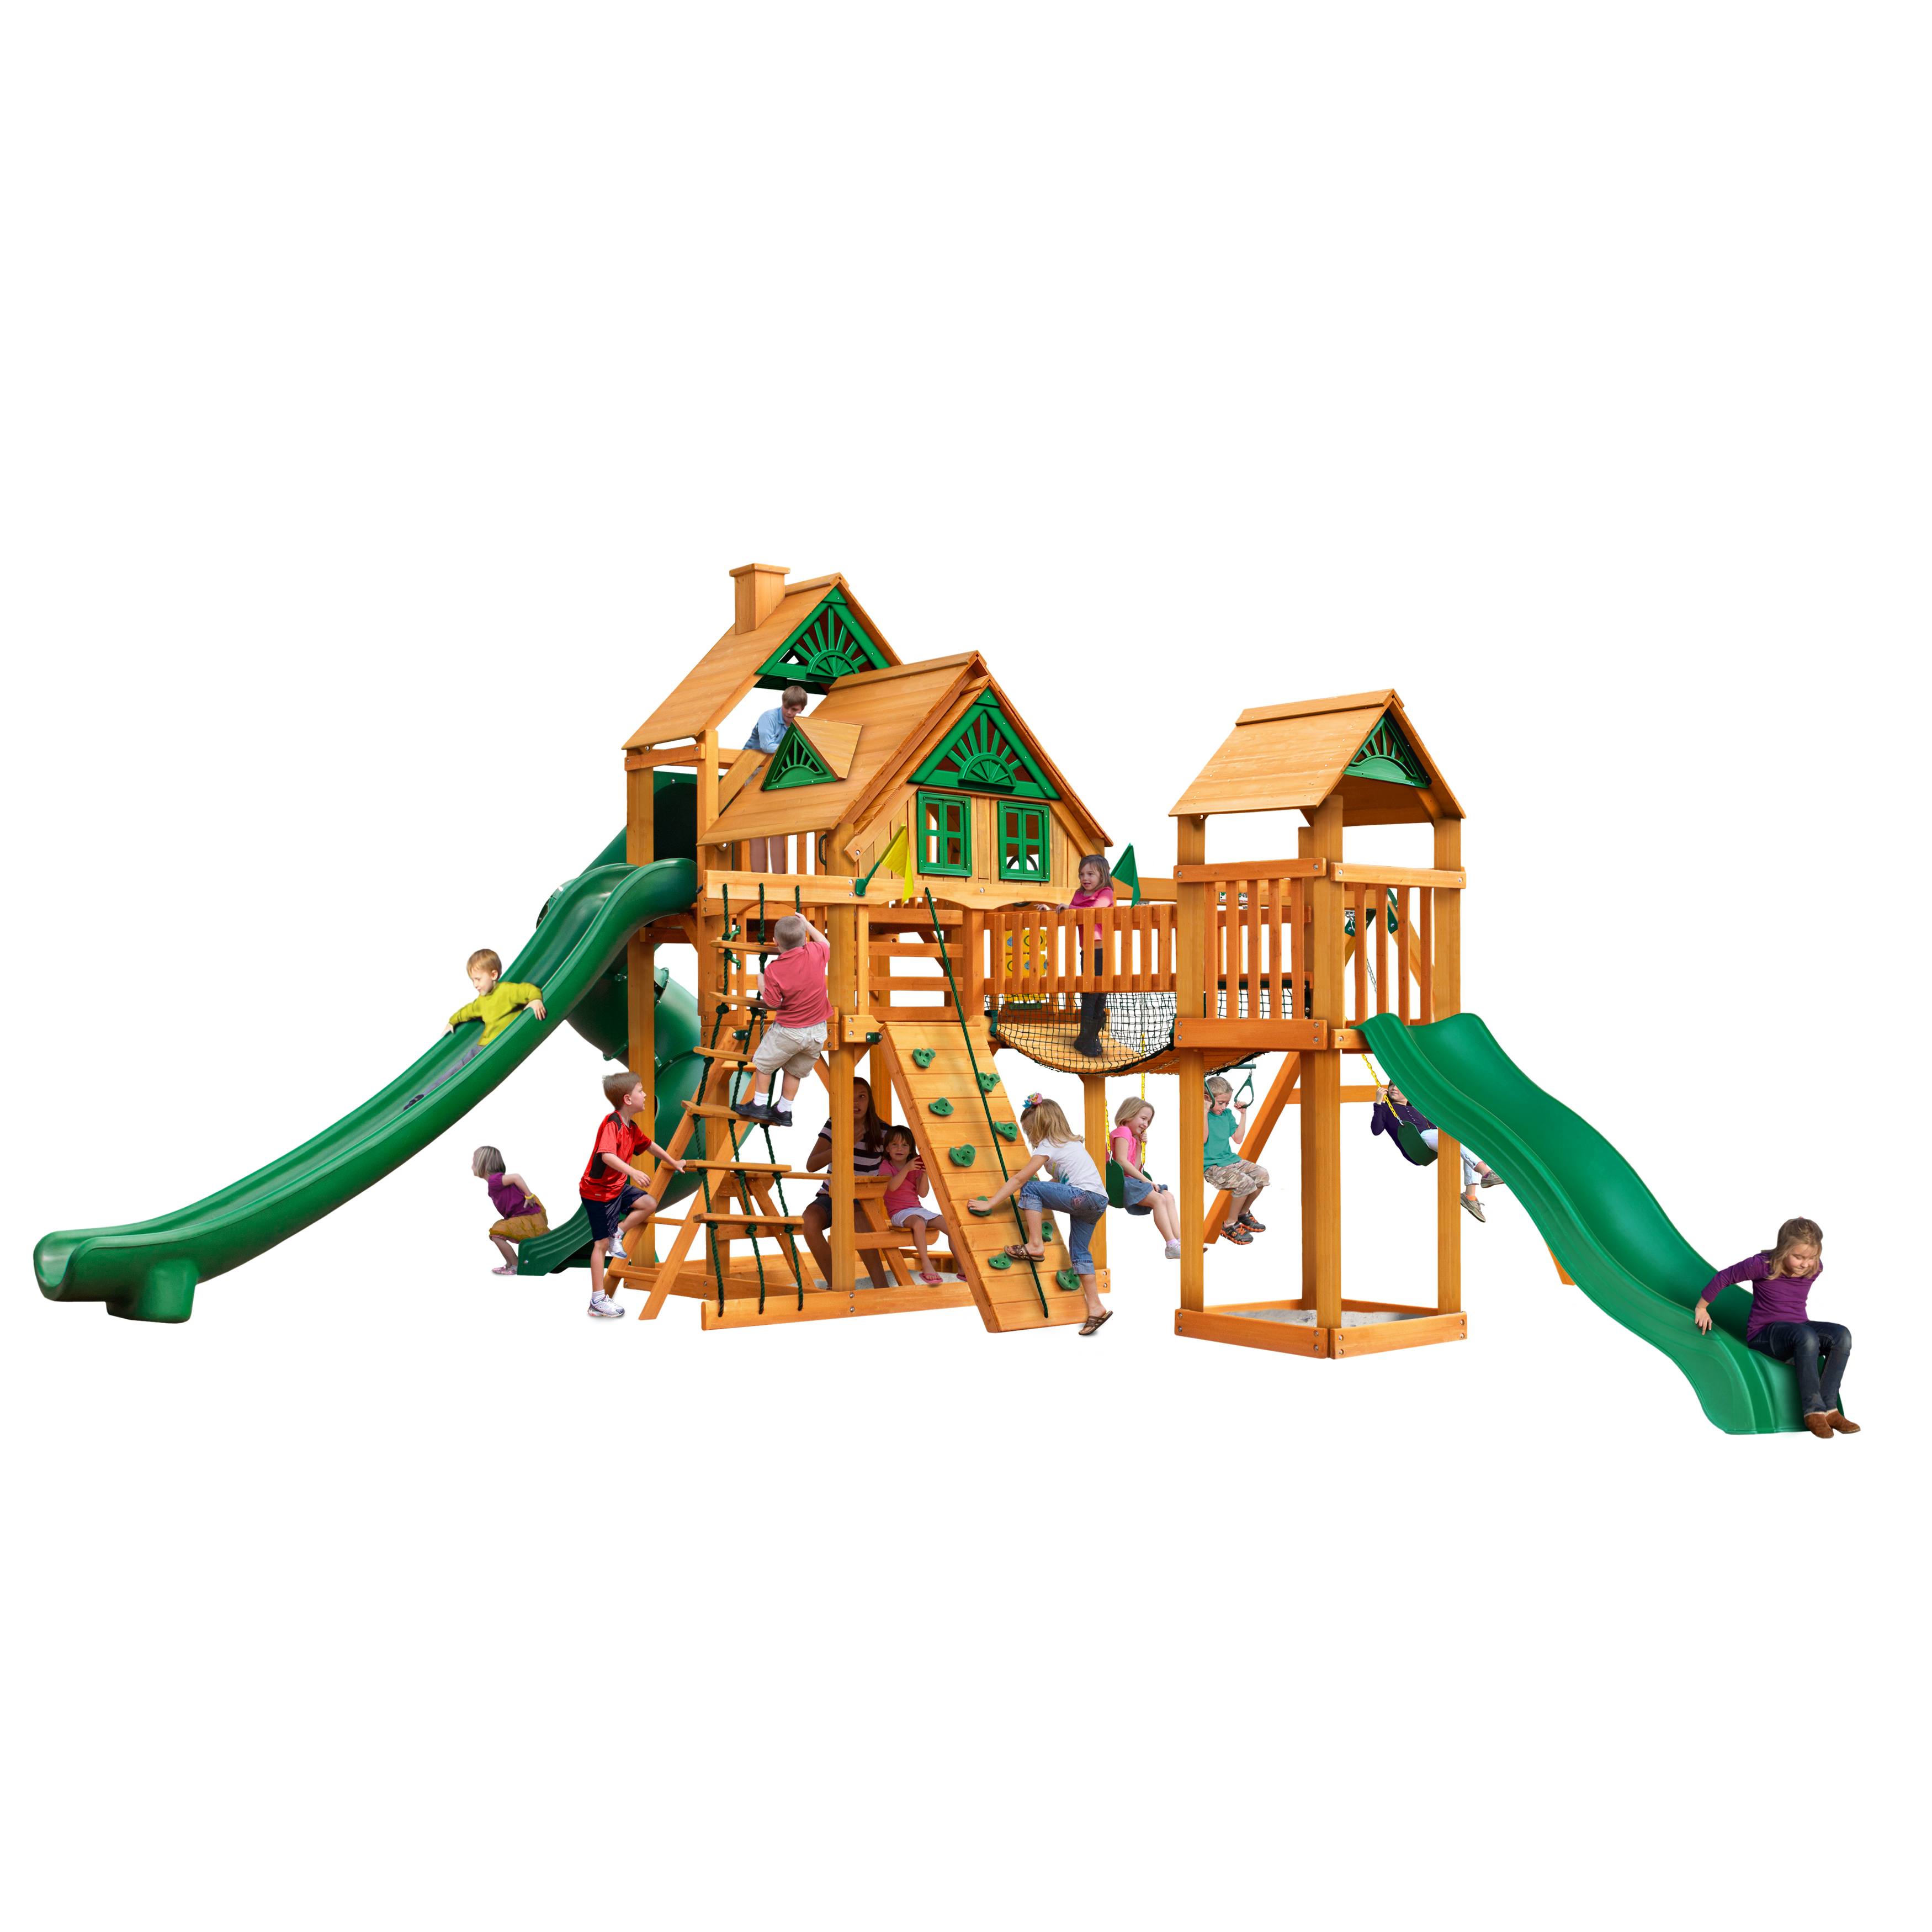 Gorilla Playsets Treasure Trove II Treehouse Wooden Swing Set with 3 Slides, Clatter Bridge and Tower, and... by Gorilla Playsets